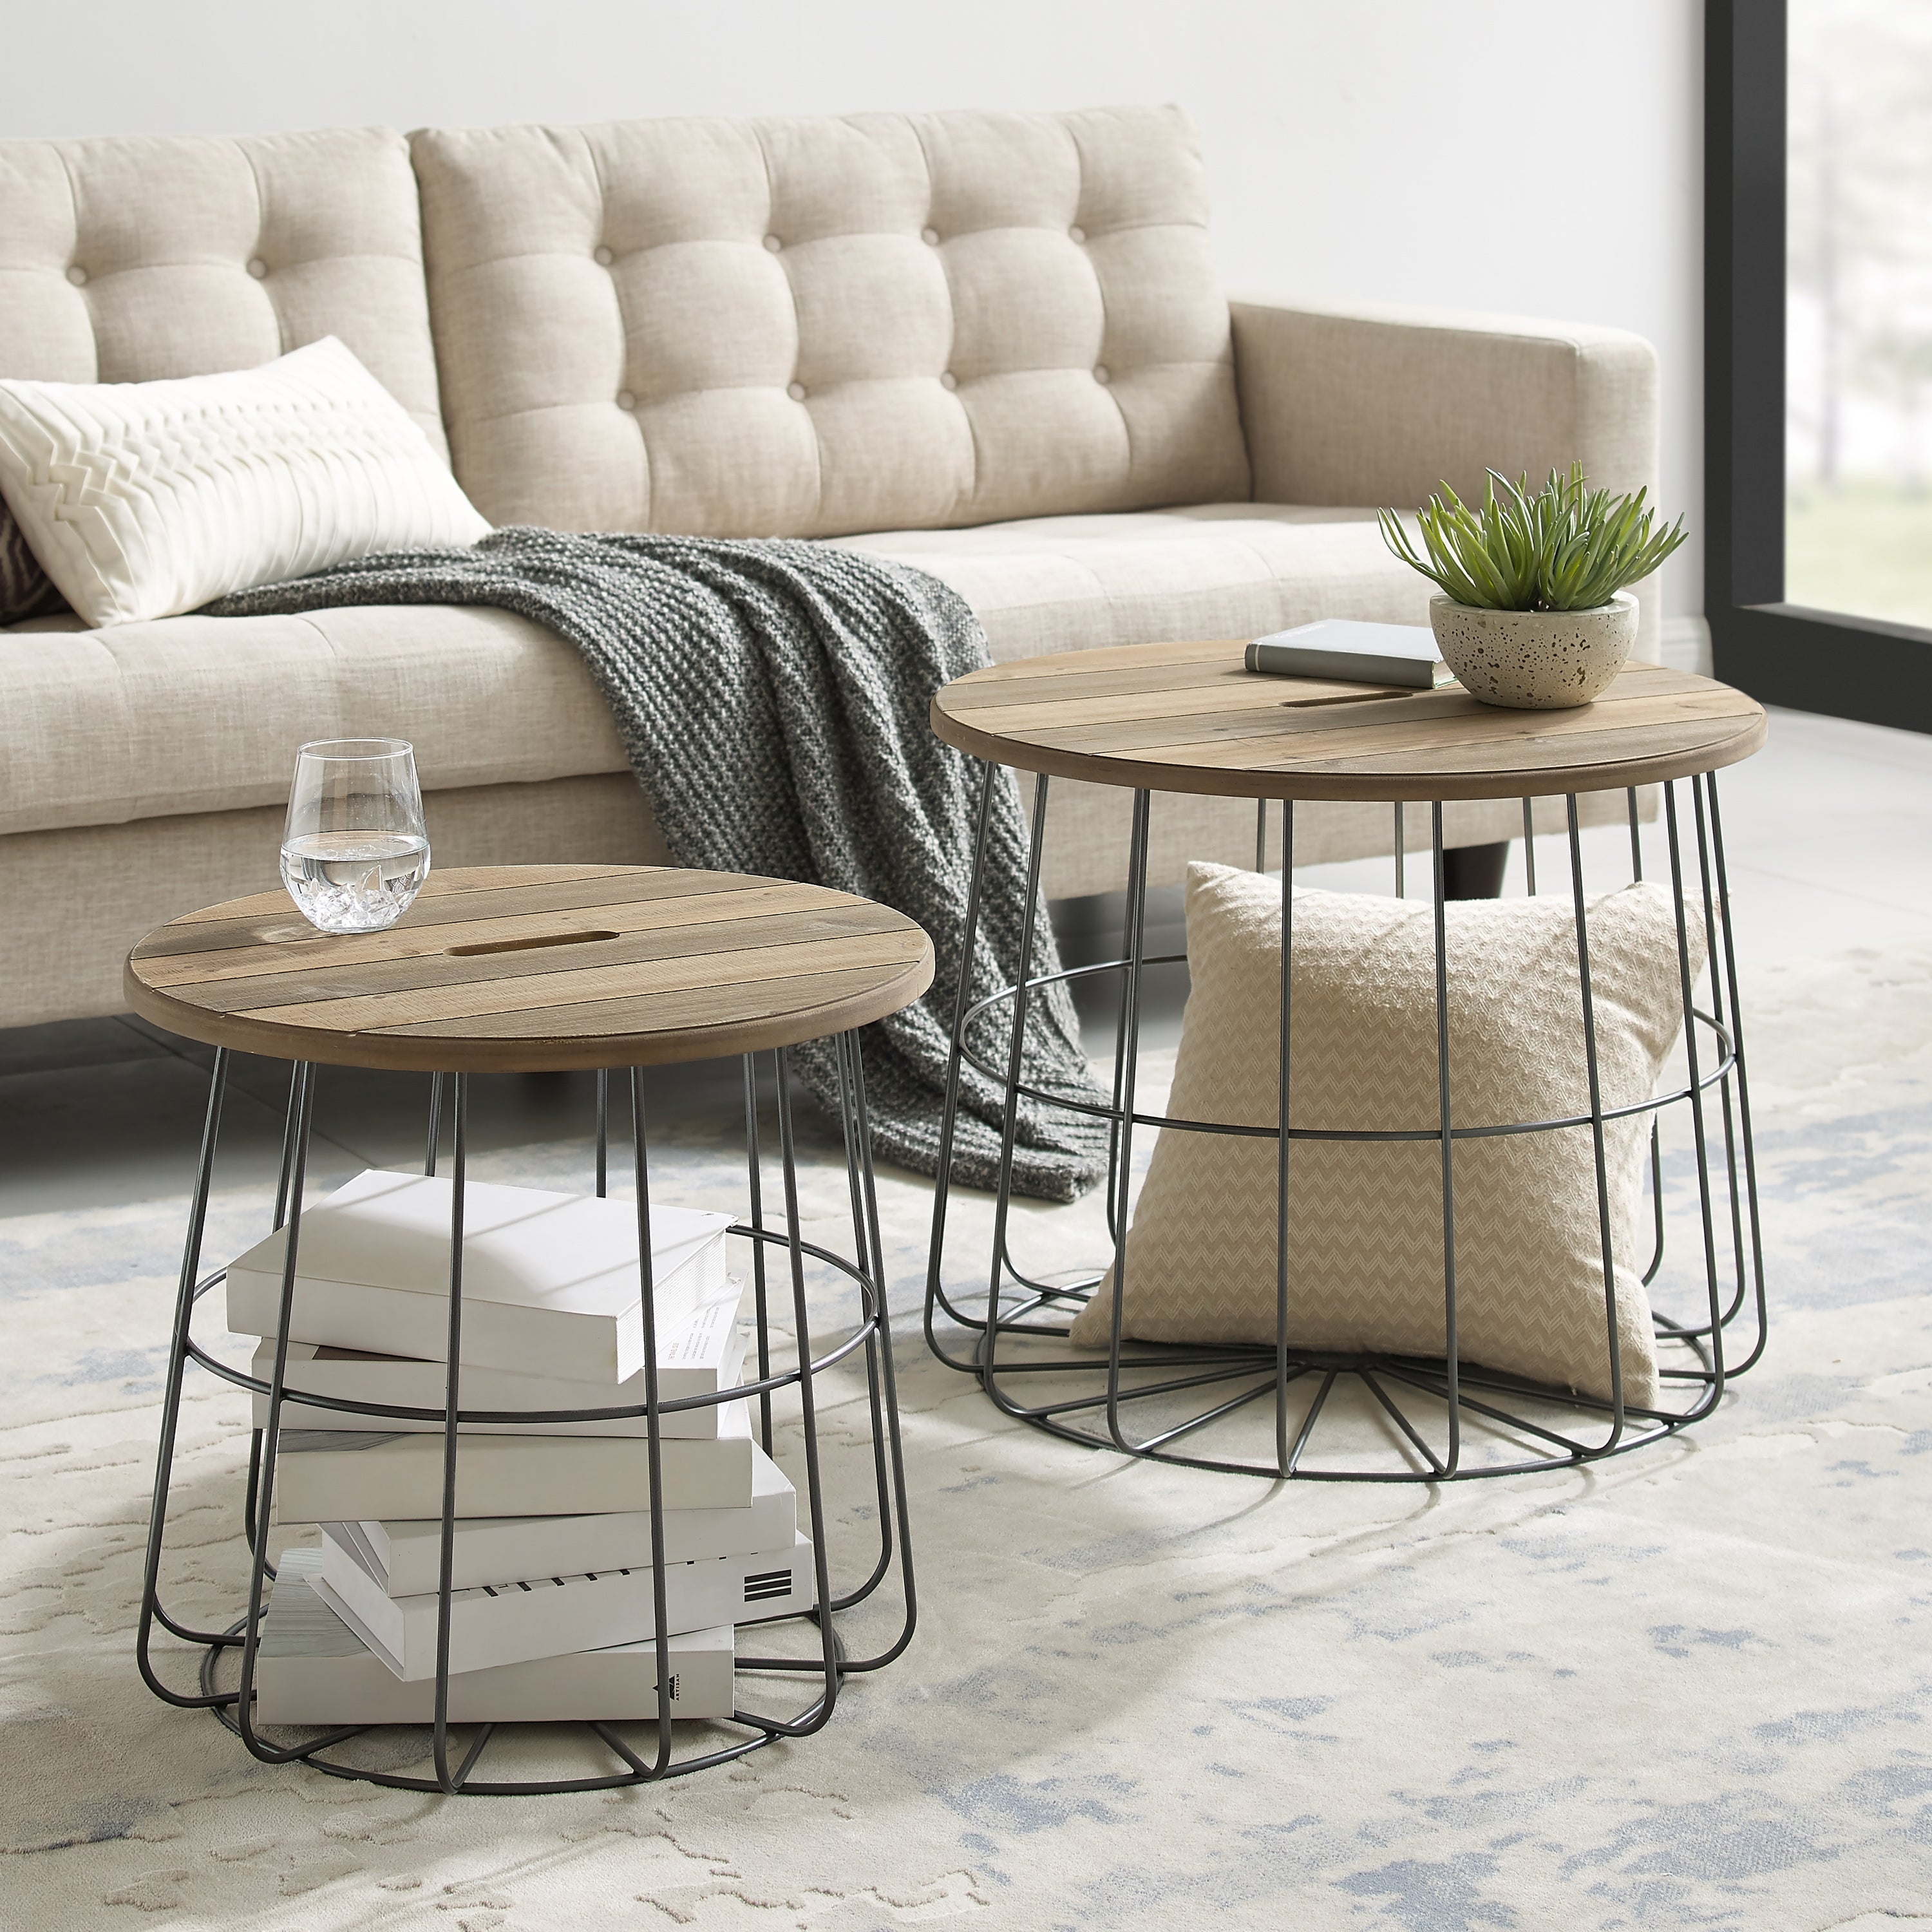 Picture of: Berwick Metal And Wood Basket Nesting Tables Overstock 30105583